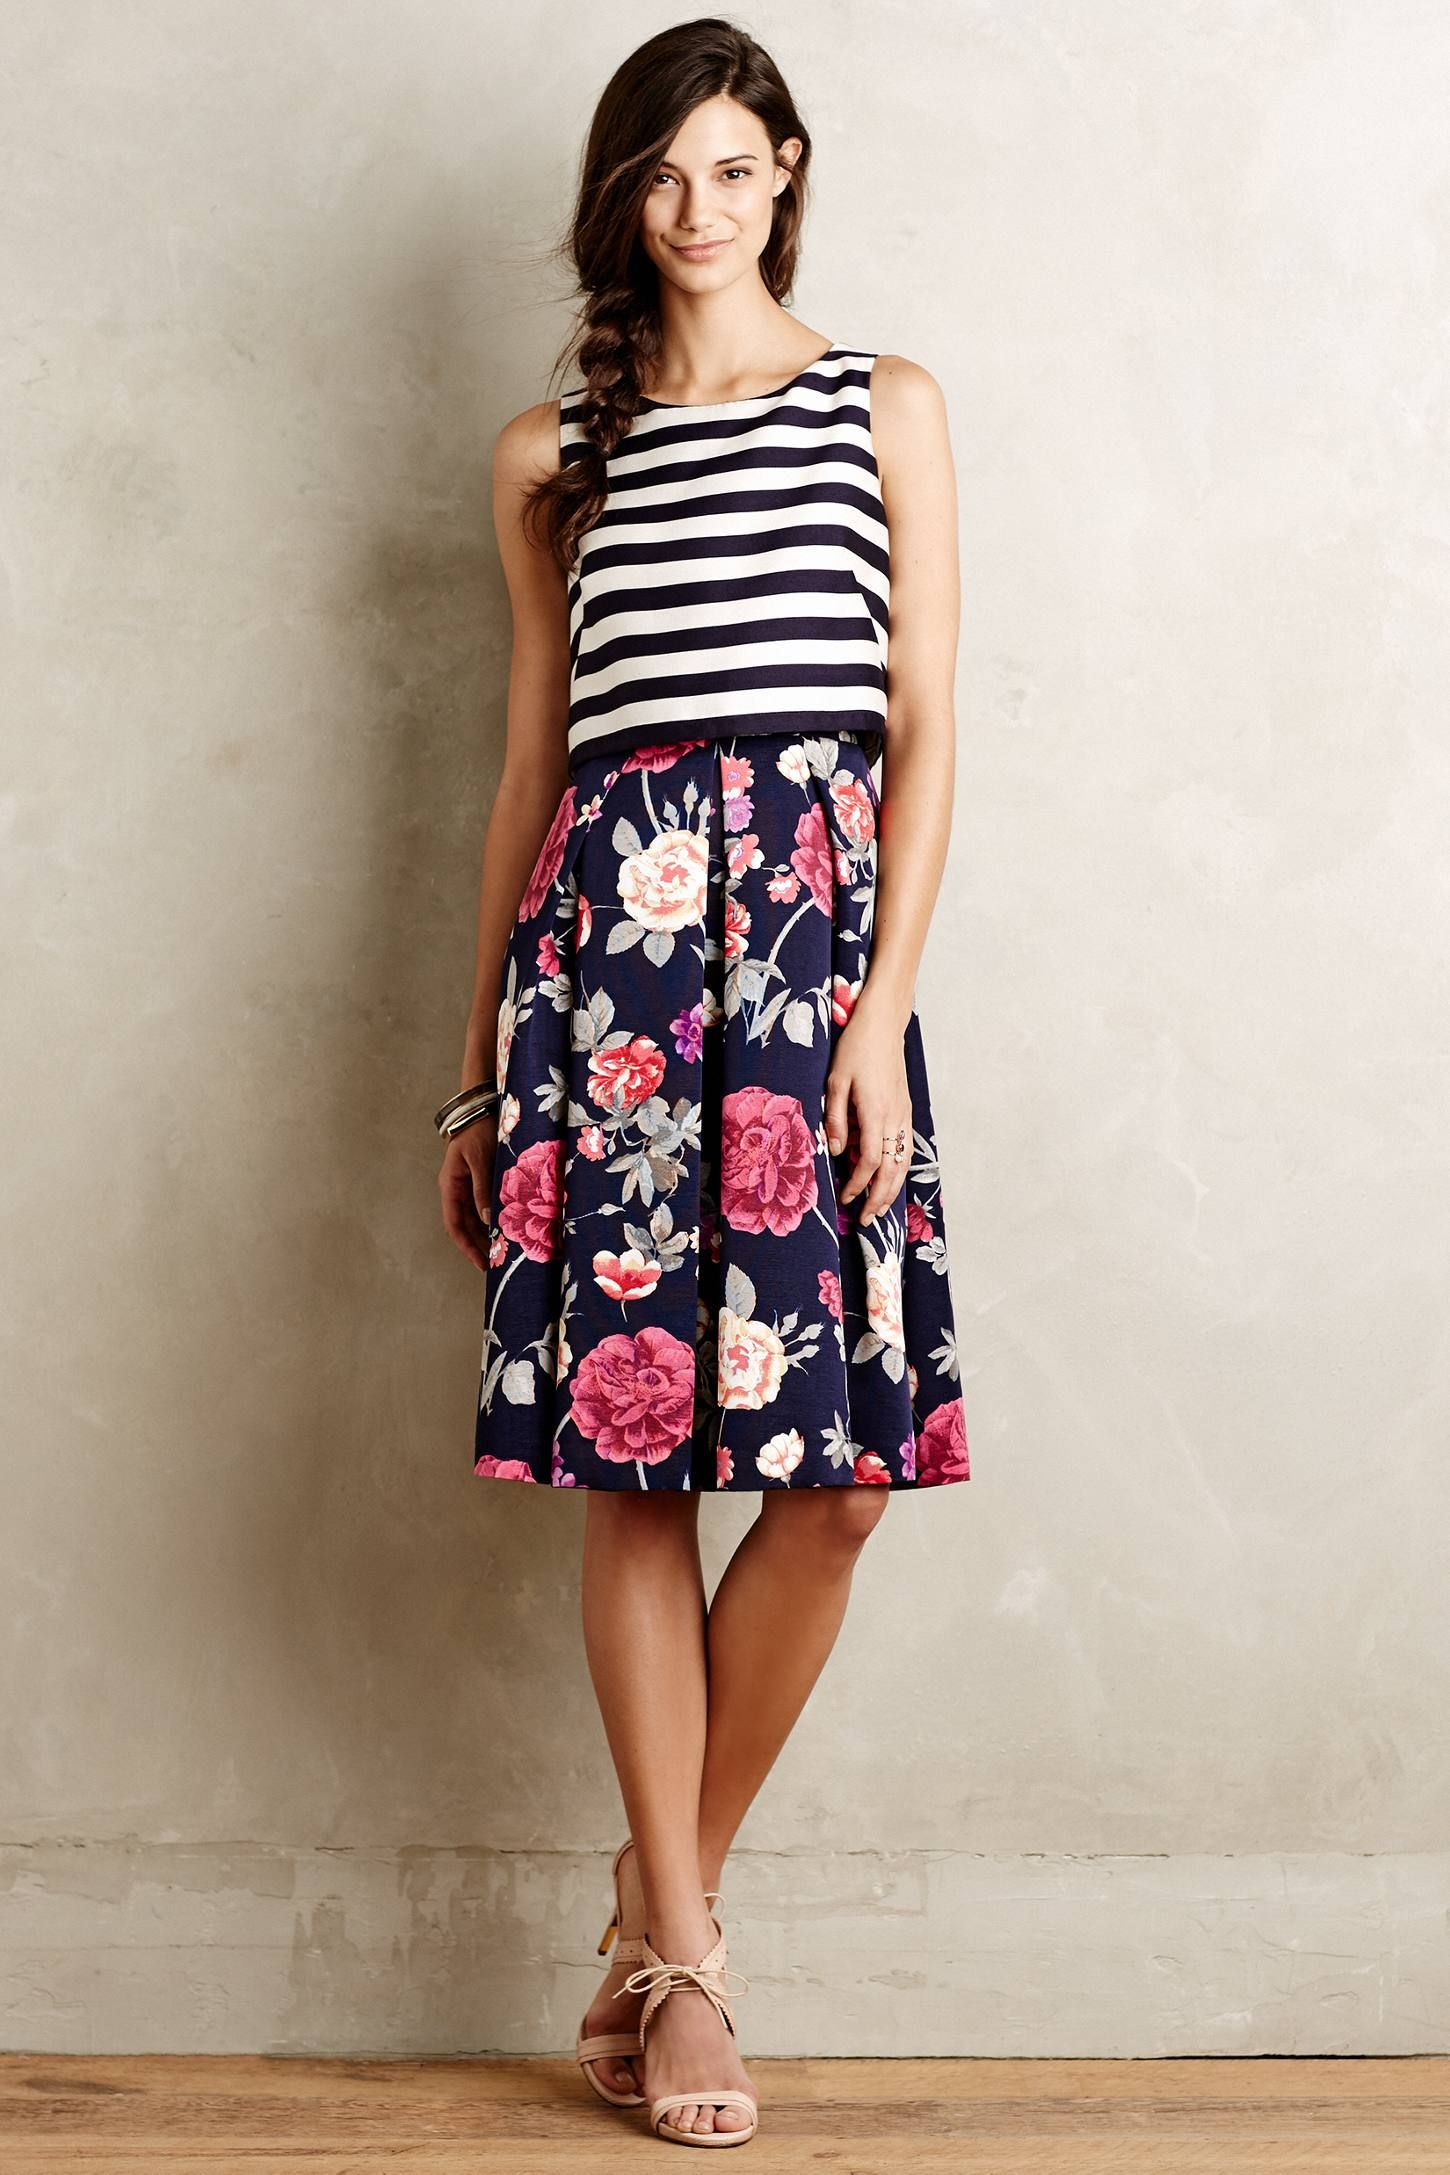 I like the combination of prints, and shapes Split-Print Dress - anthropologie.com